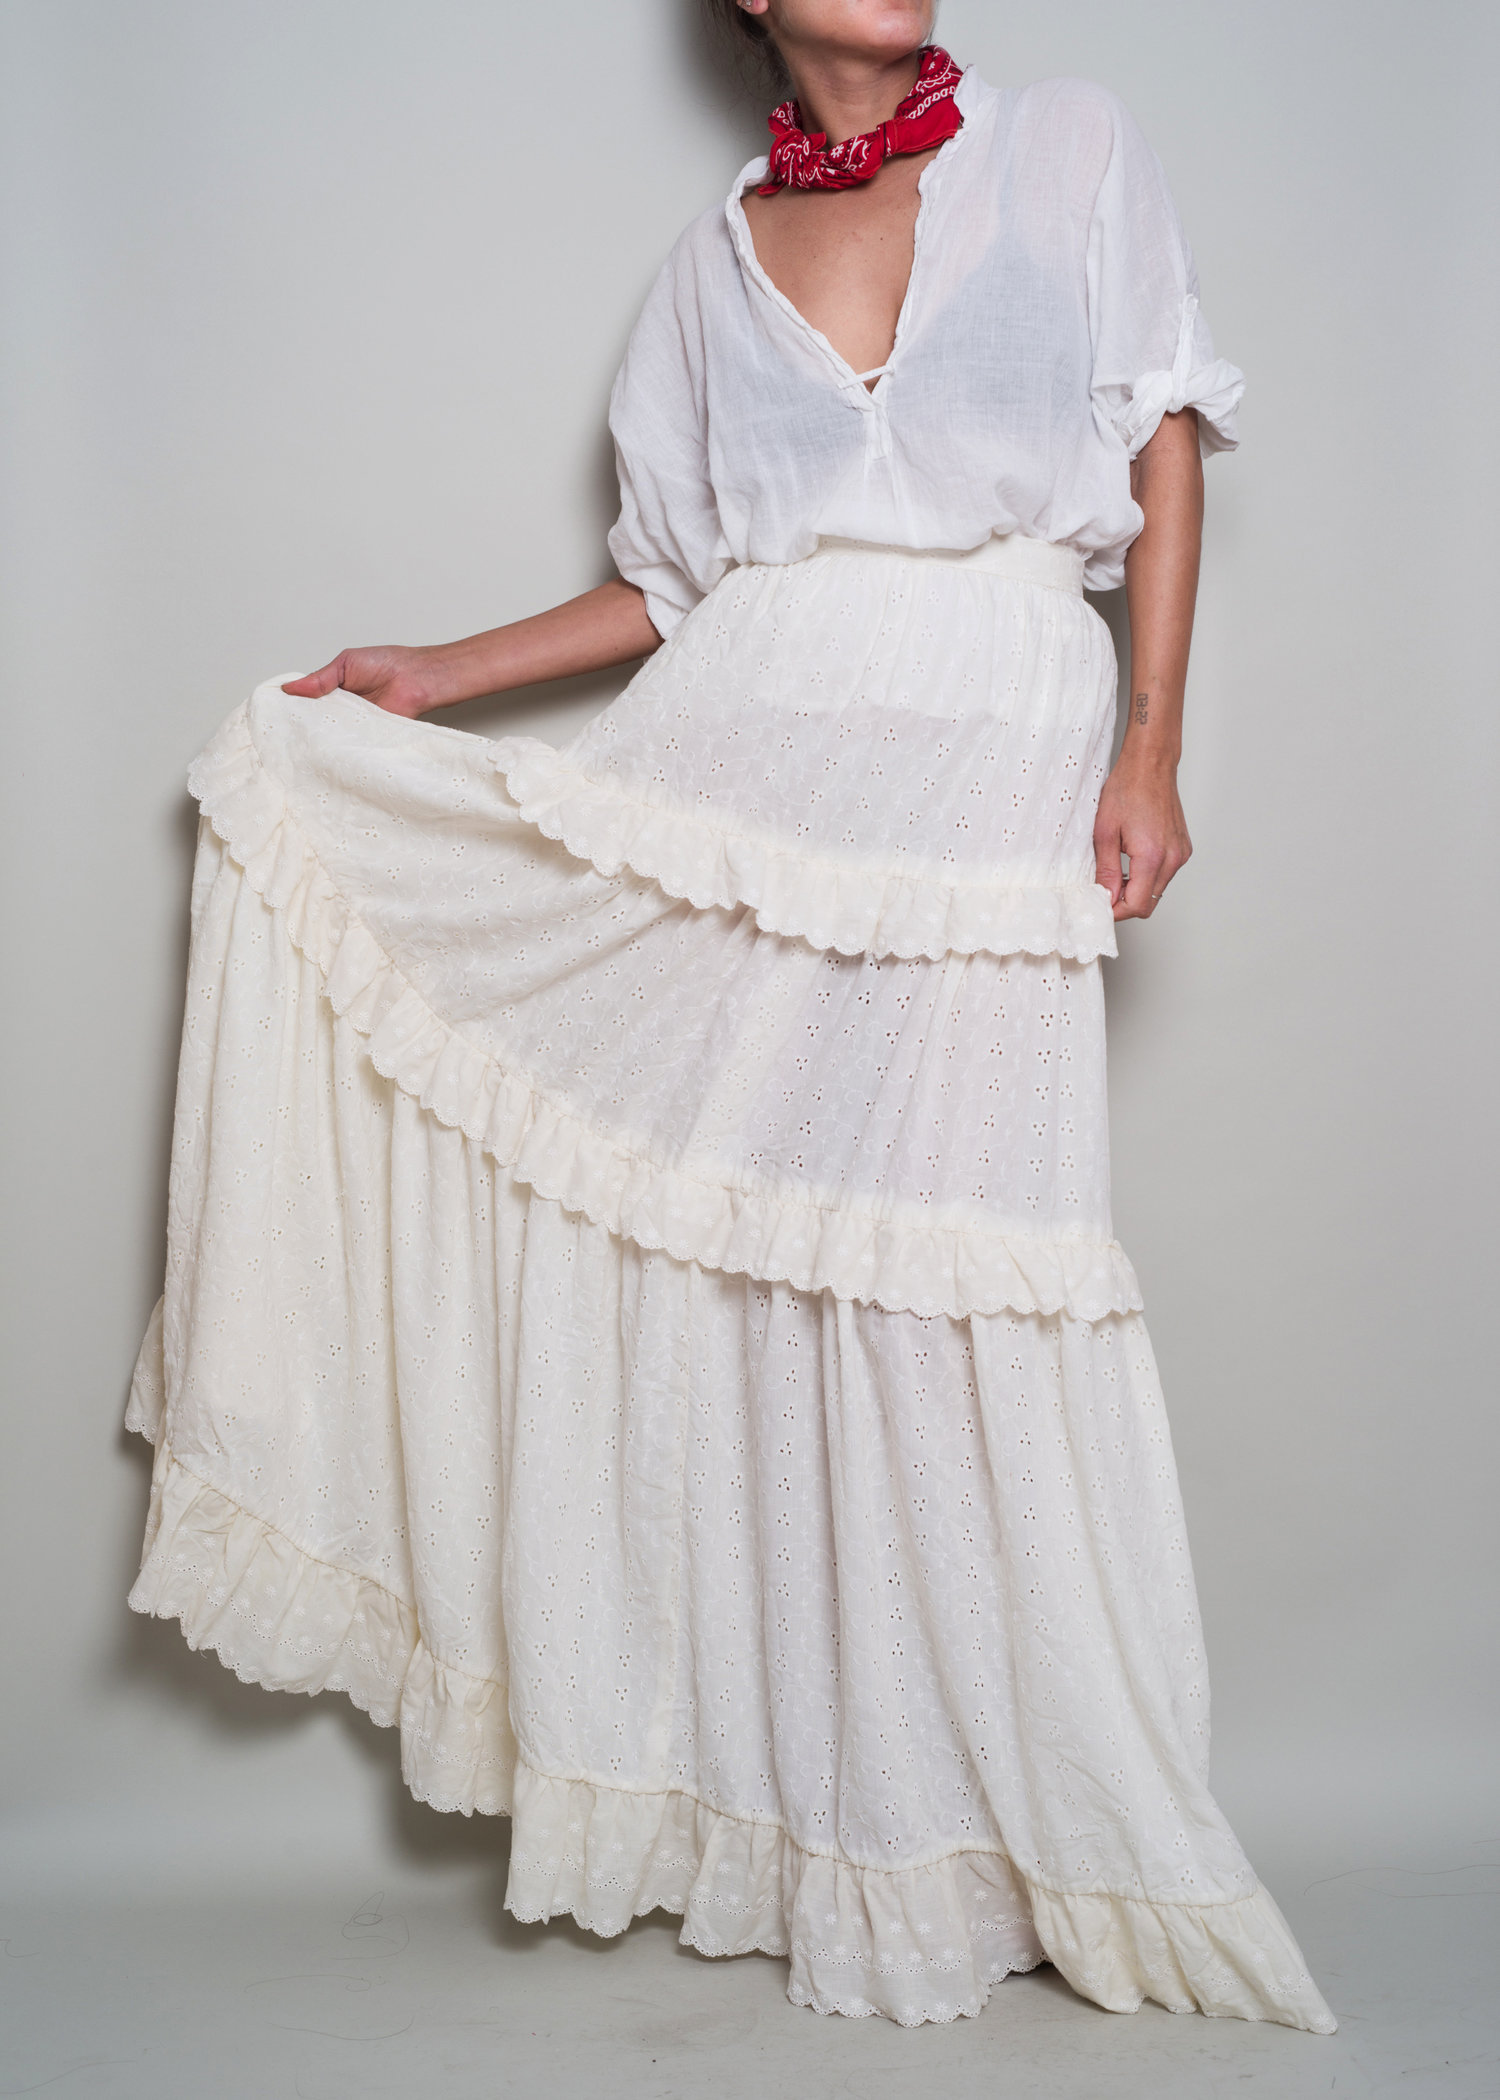 af62cafc9 1970s// Ivory Eyelet Embroidery Tiered Prairie Maxi Skirt// XS.  A_Part_of_the_Rest_Vintage_1970s_Embroidery_Eyelet_Tiered_Ivory_Prairie_Maxi_Skirt001.jpg